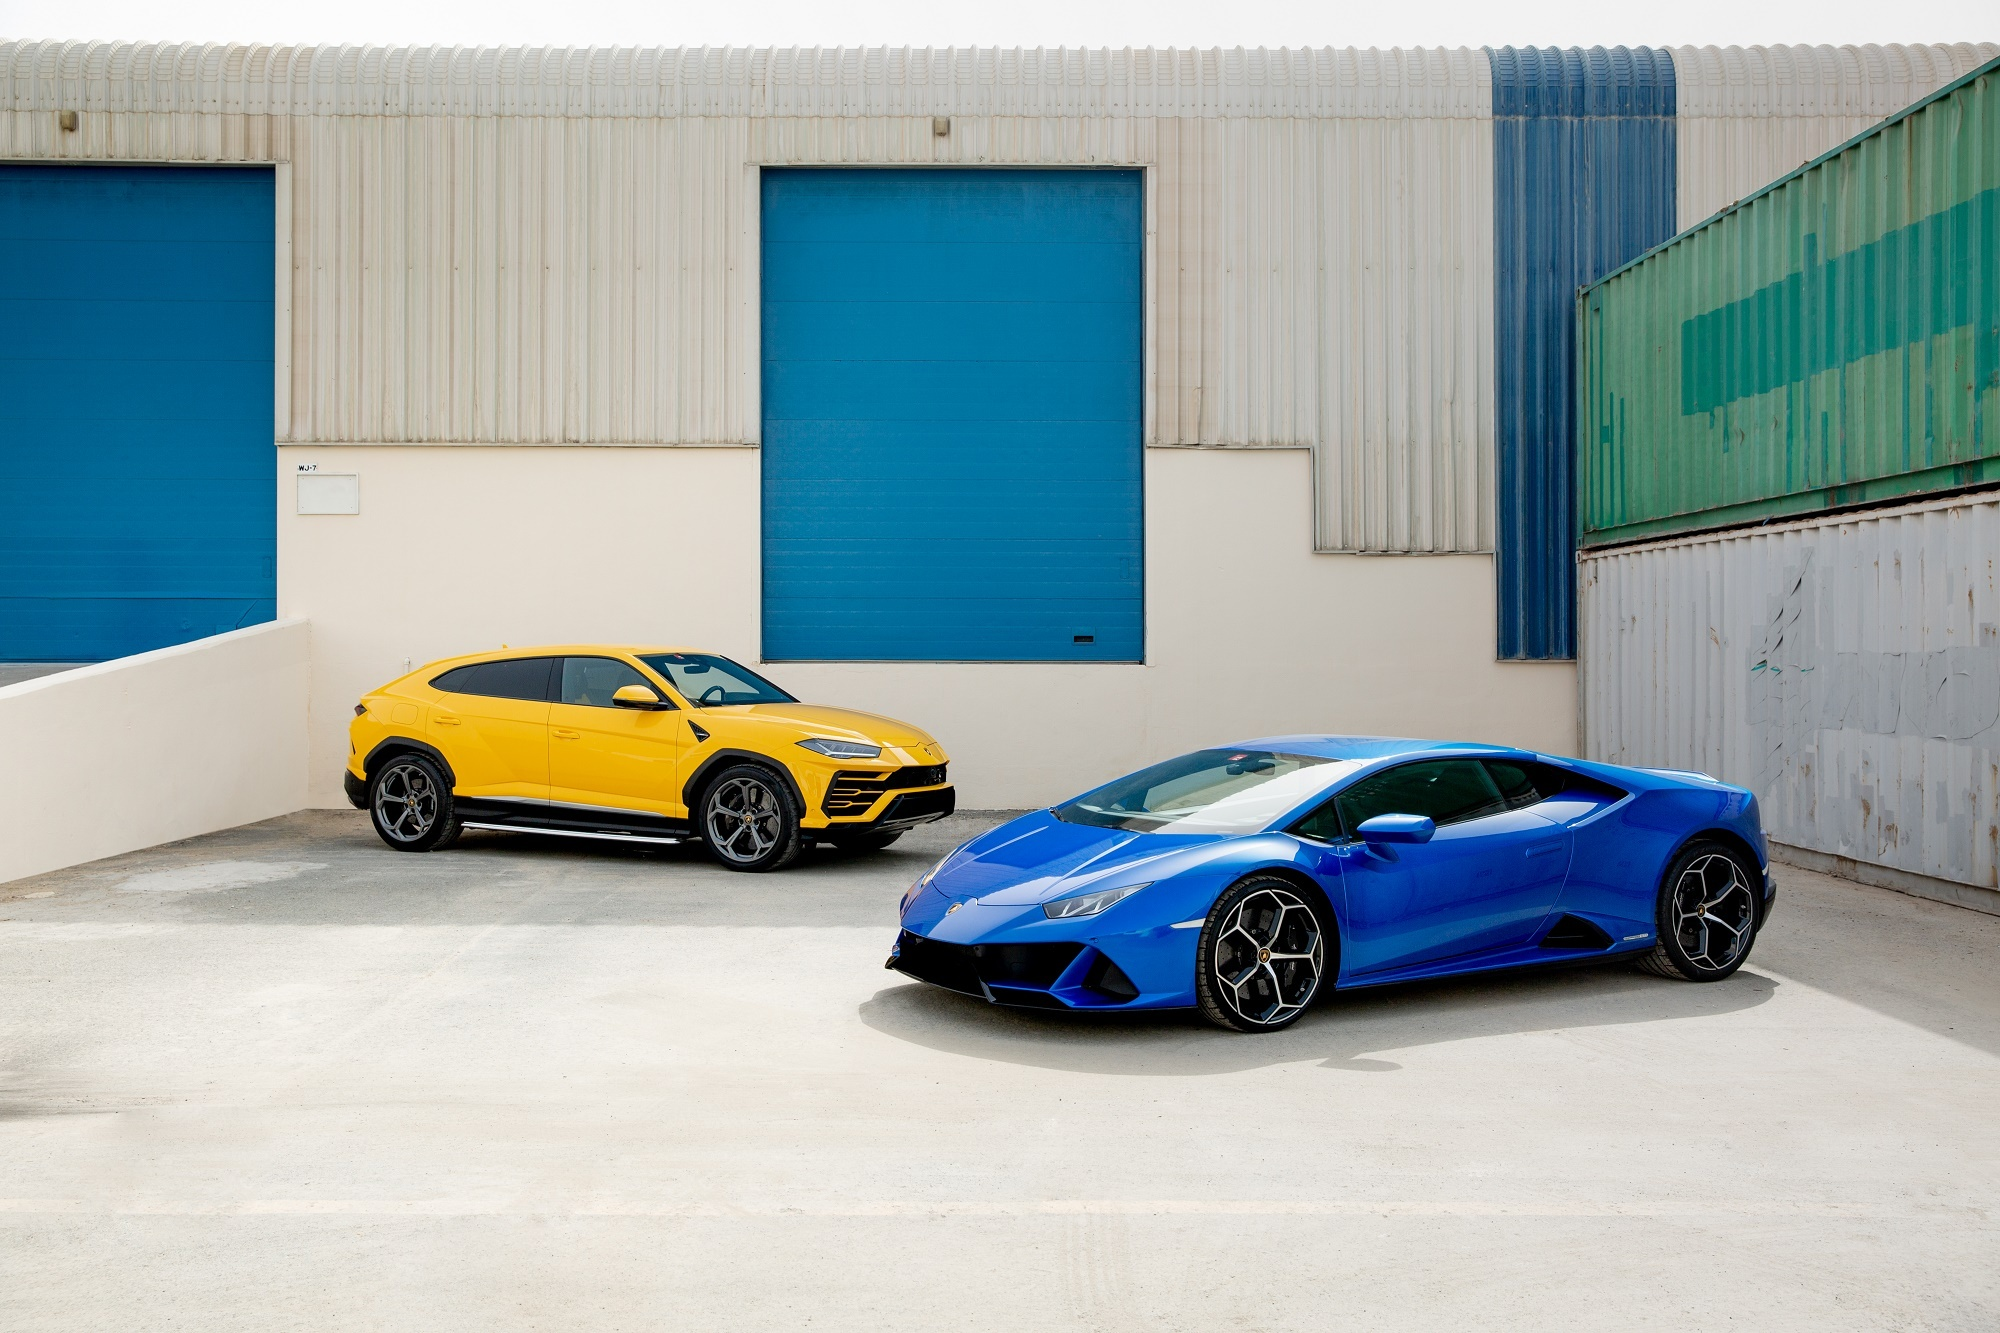 Lamborghini cements top position as super sports car brand of choice in the Middle East